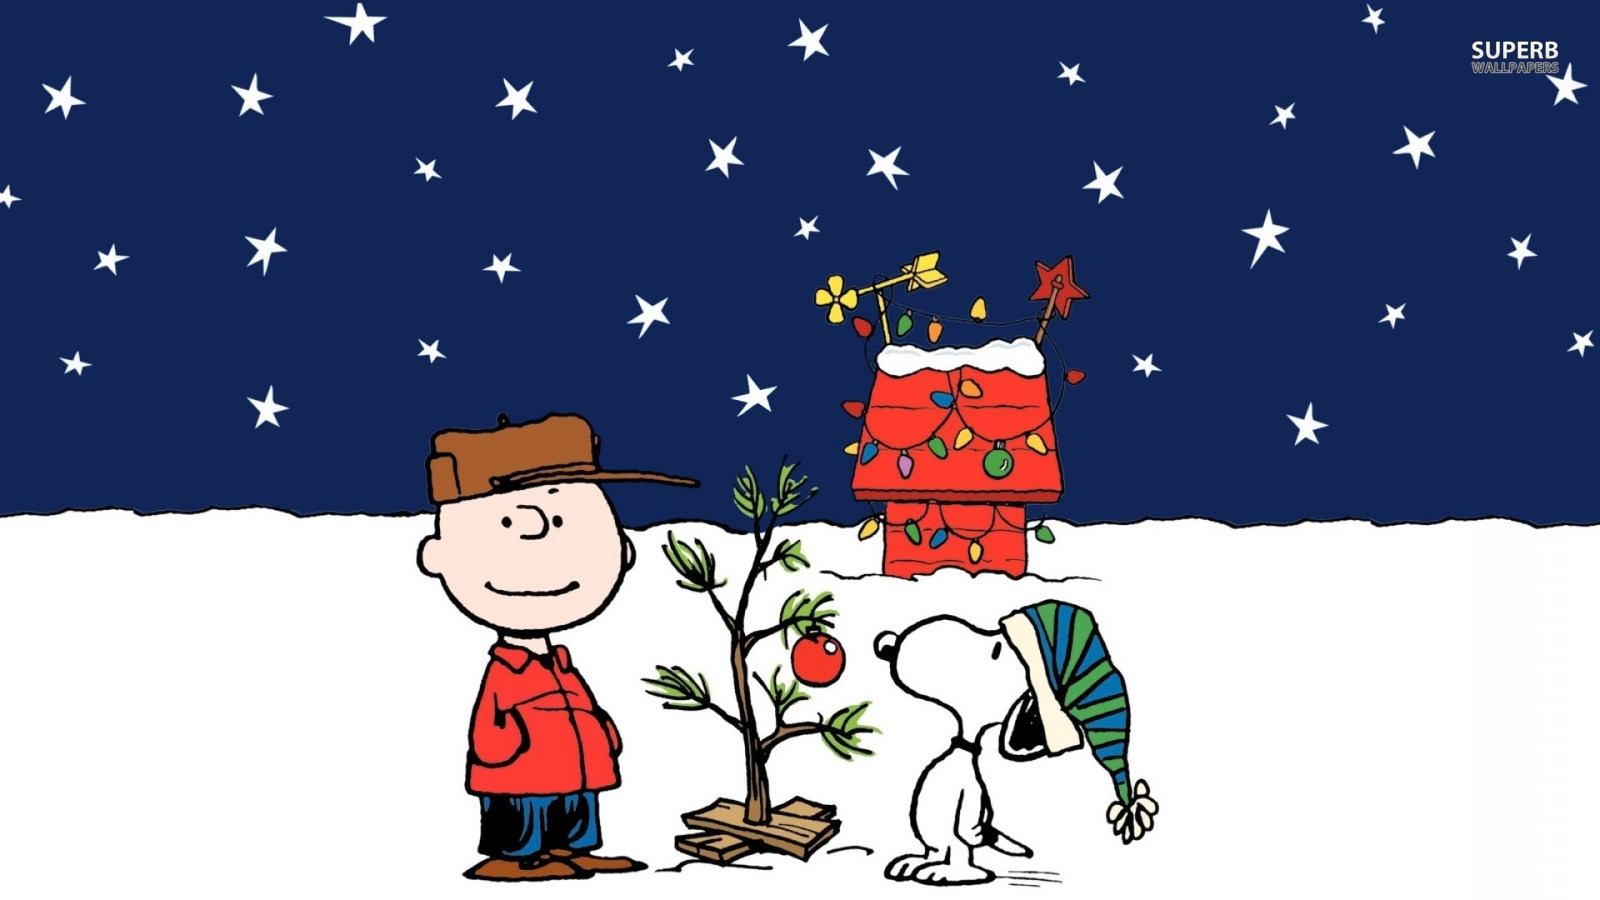 peanuts images a charlie brown christmas hd wallpaper and background